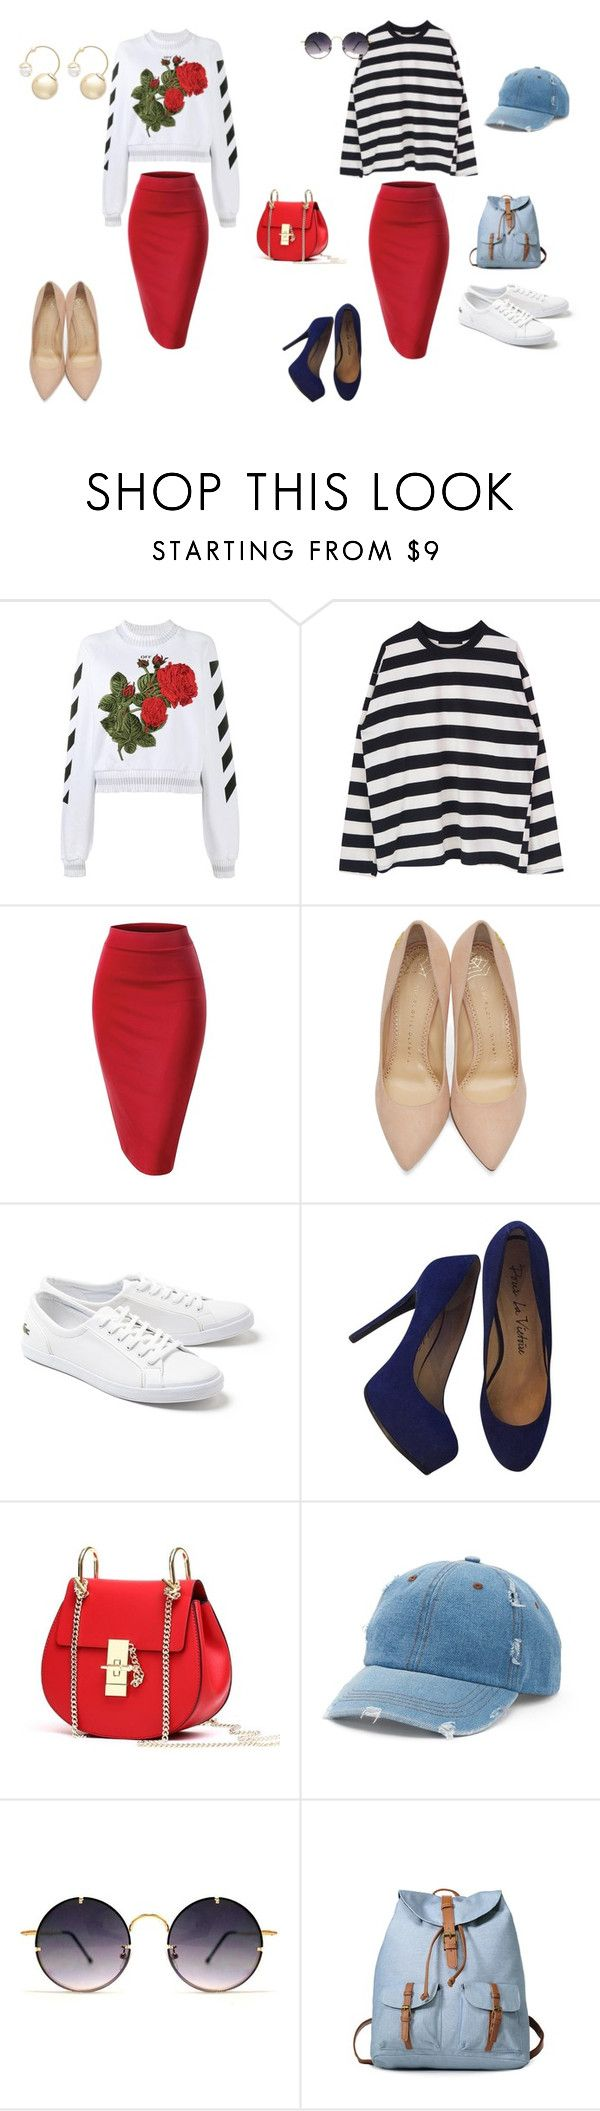 """ЮБКА-КАРАНДАШ_2 ОБРАЗА_1"" by yana-ardysheva on Polyvore featuring мода, Off-White, Charlotte Olympia, Lacoste, Pour La Victoire, Mudd, Spitfire и Witchery"